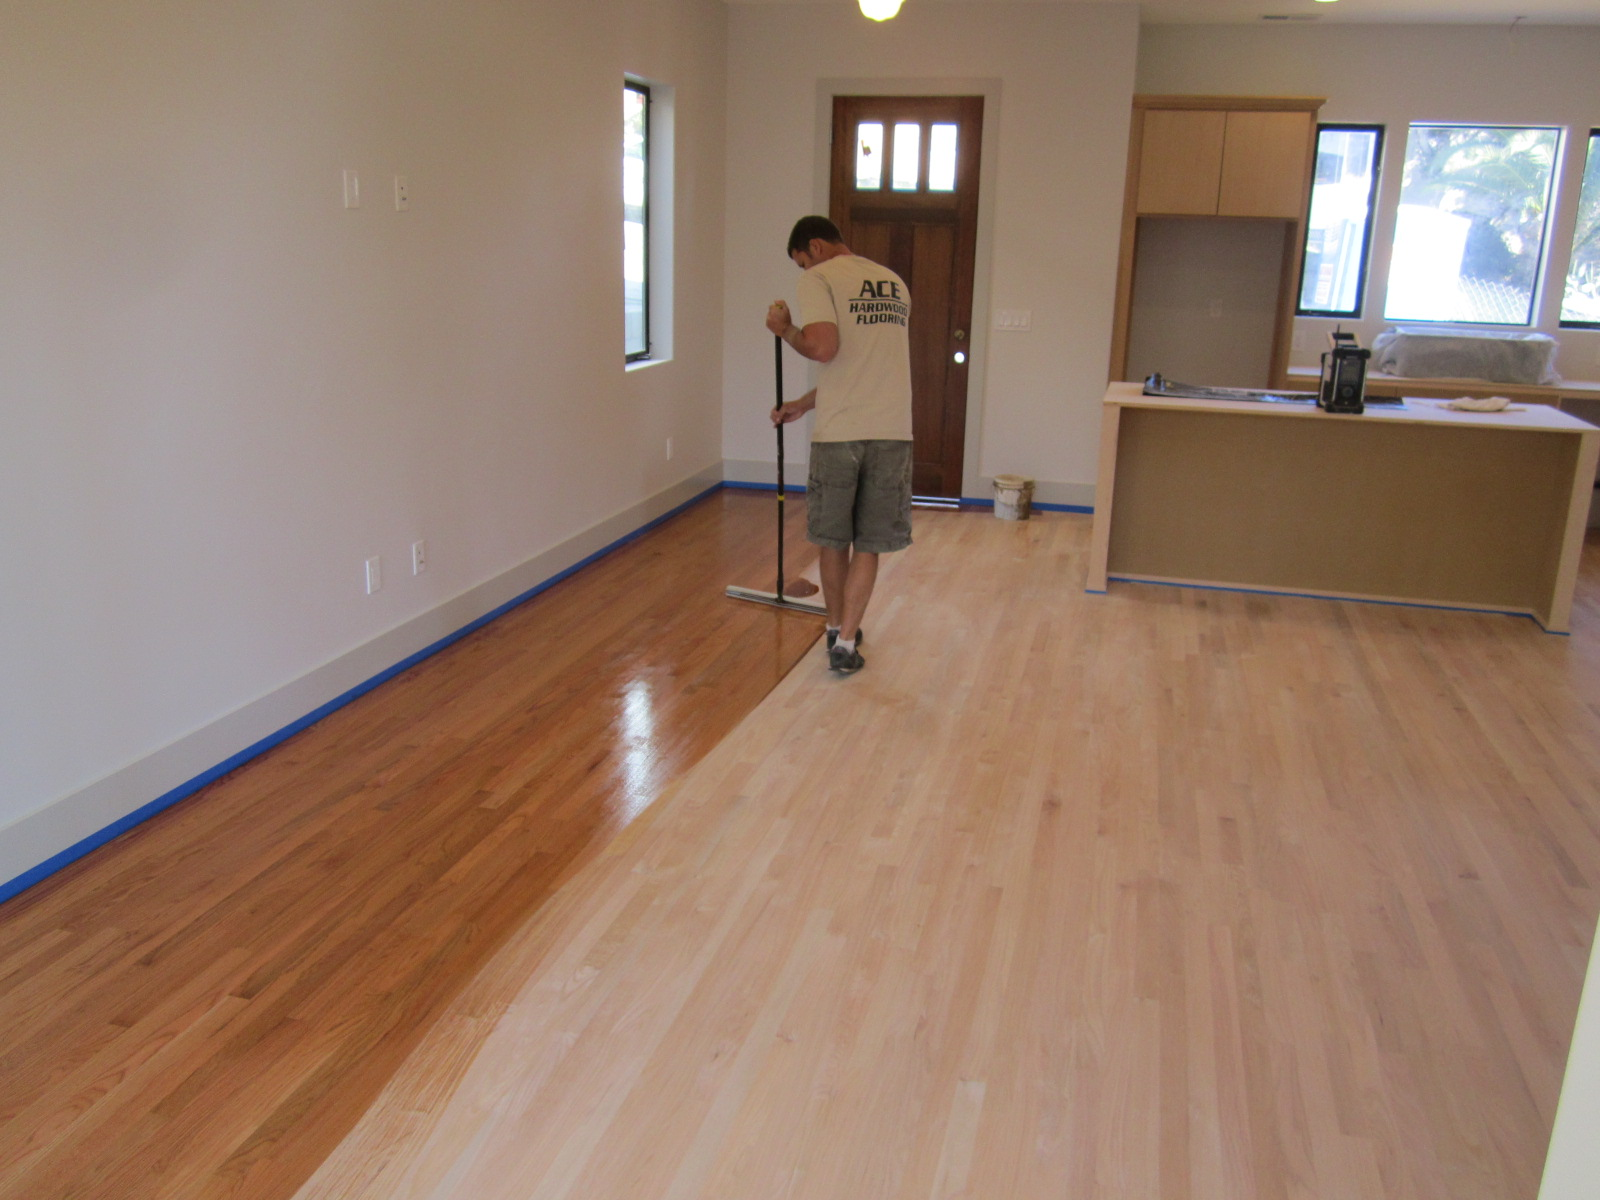 How to stain hardwood floors flooring ideas home for Color of hardwood floors